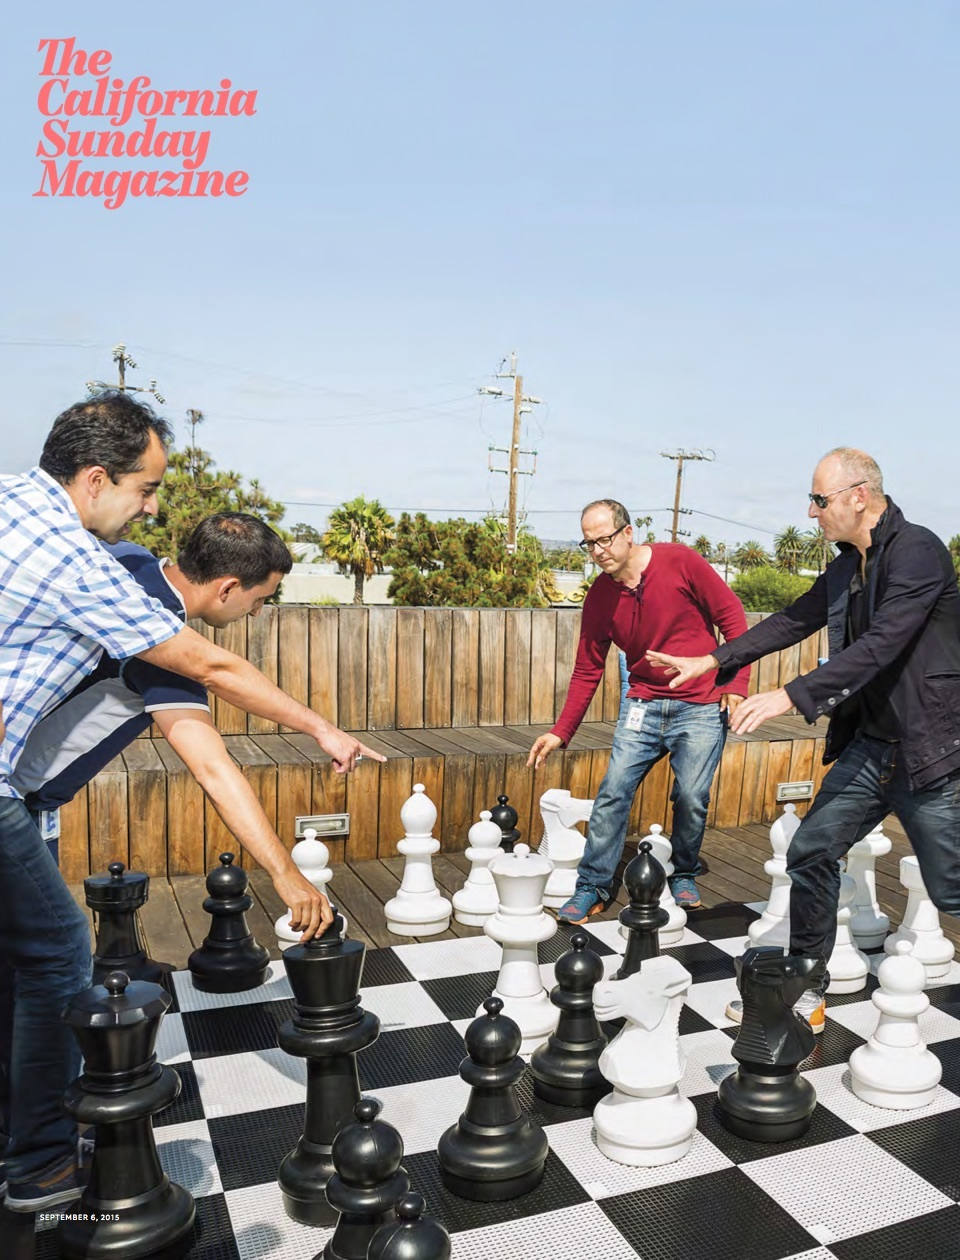 The SoCal Network was the cover story for  The California Sunday Magazine  on September 6th 2015